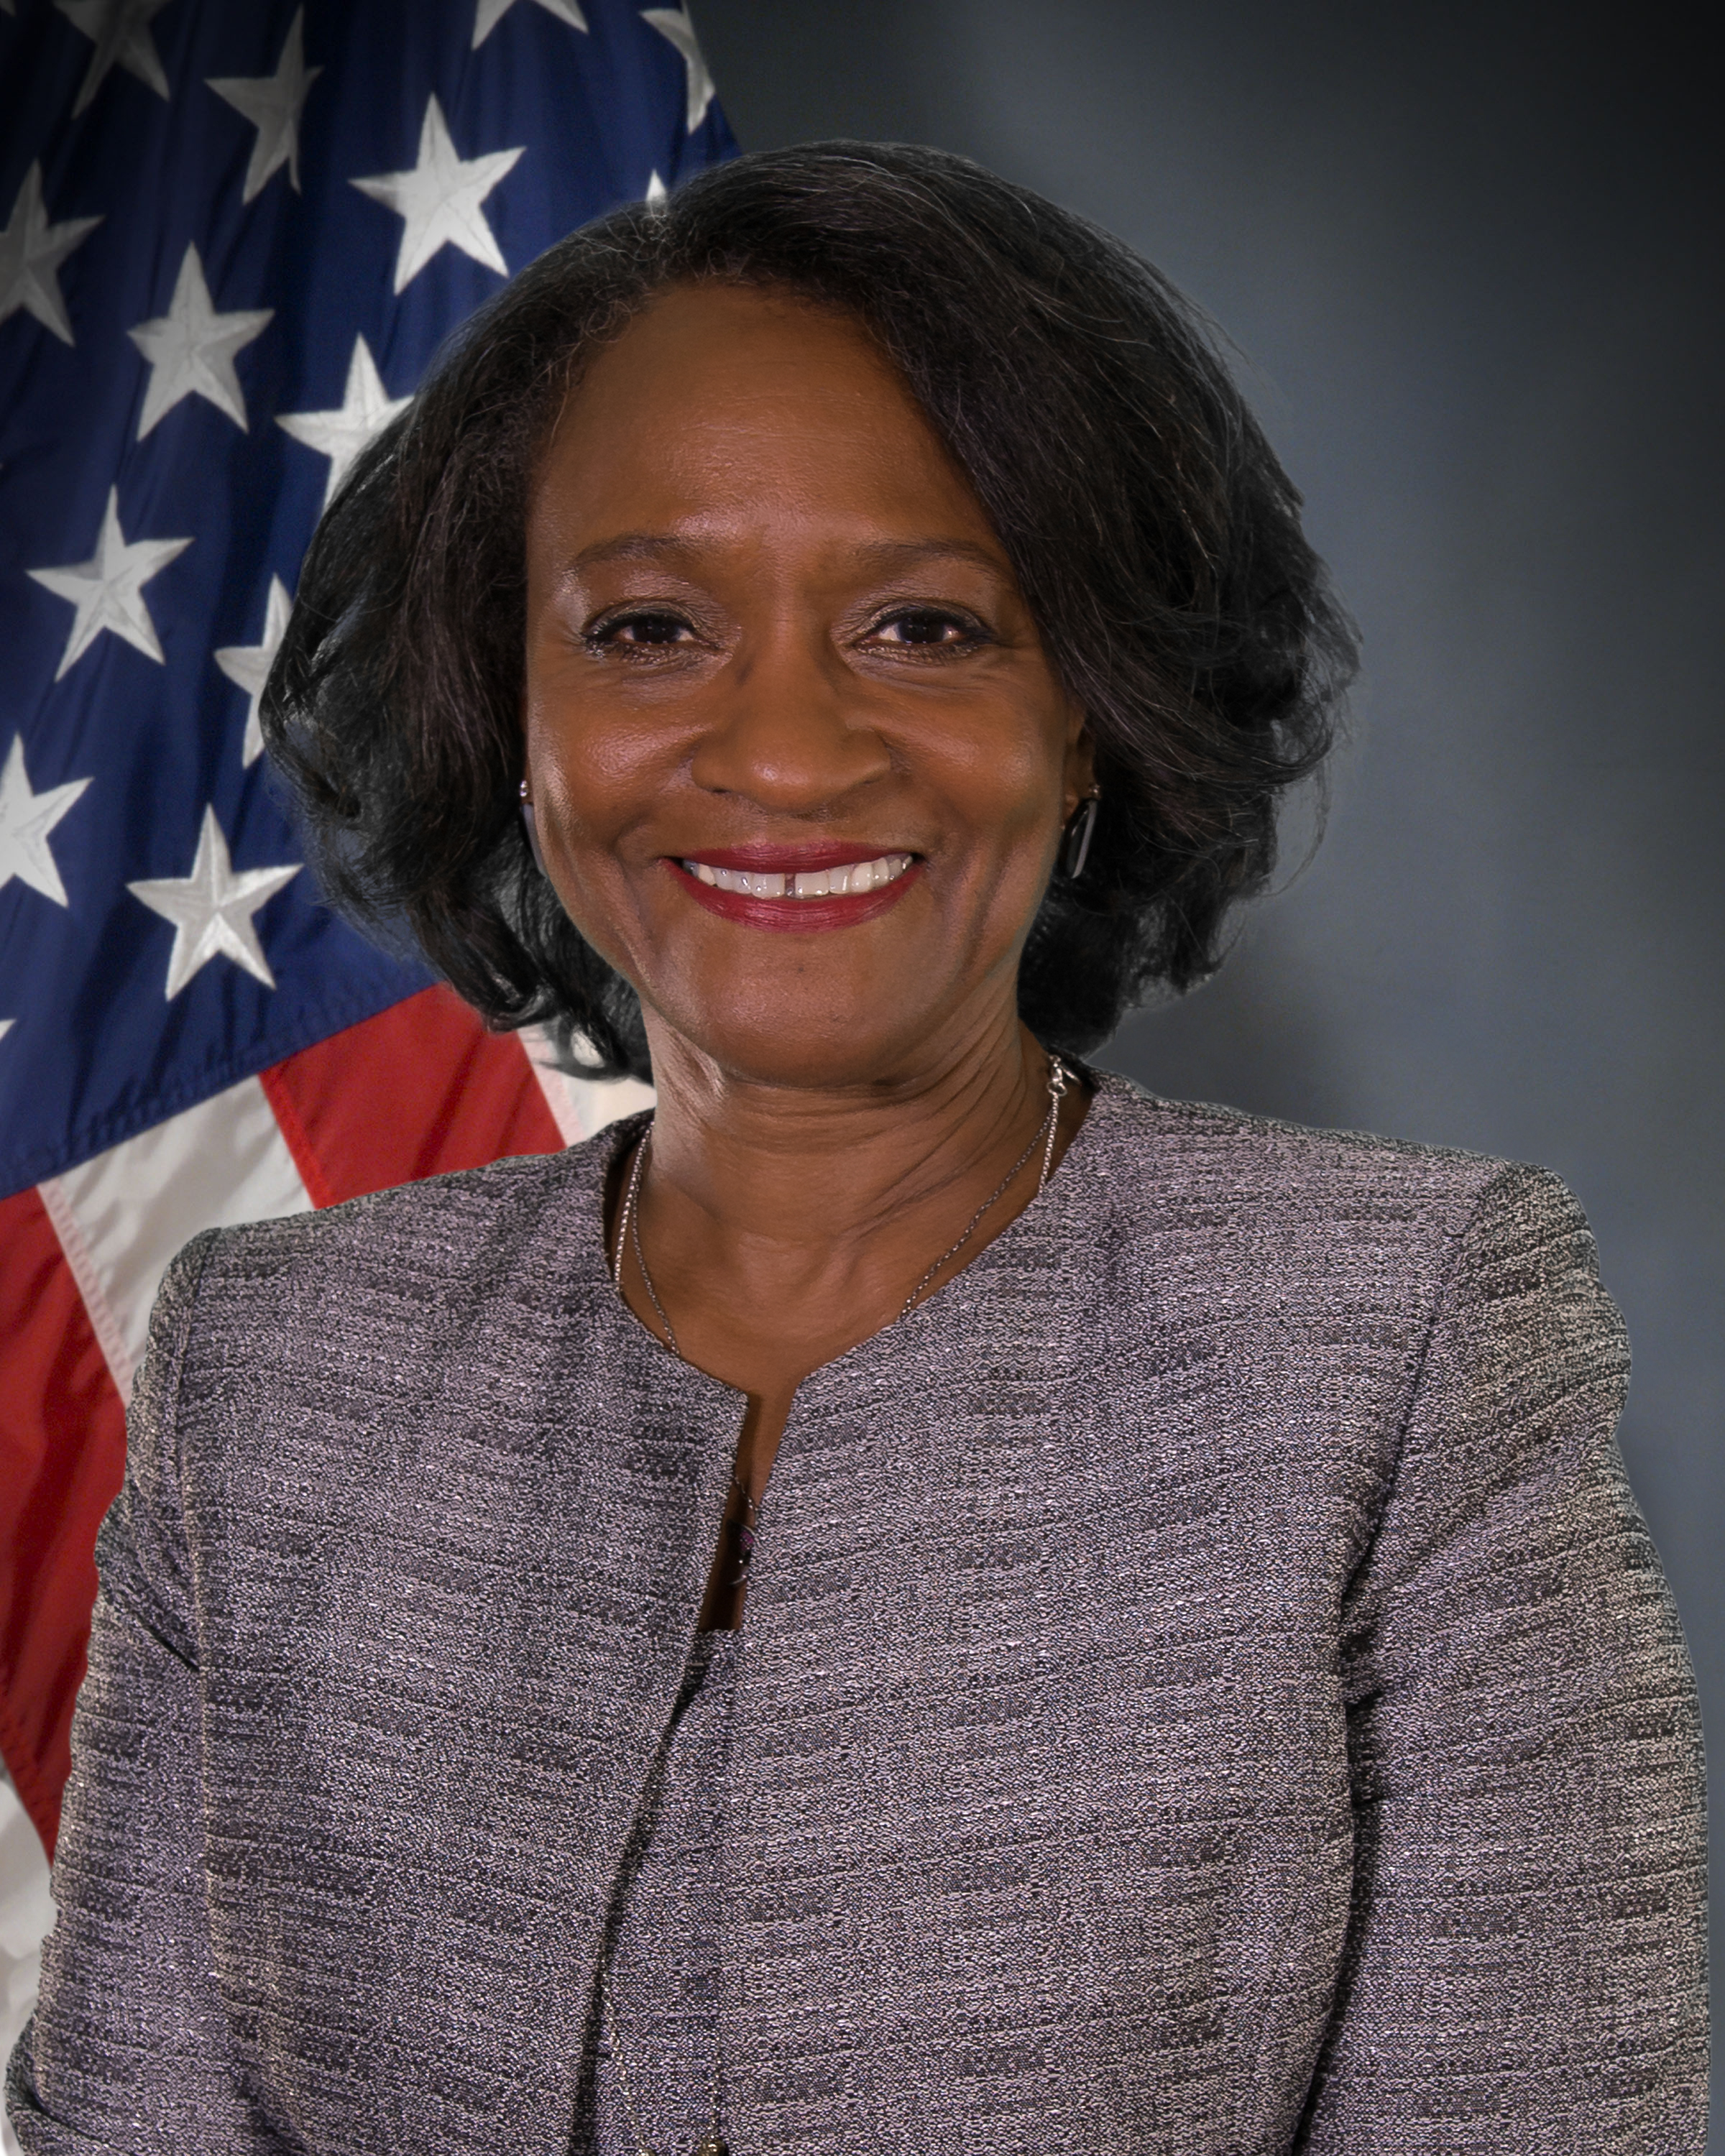 Ms. Shelia B. Taylor has been selected to serve as the State Human Resources Manager